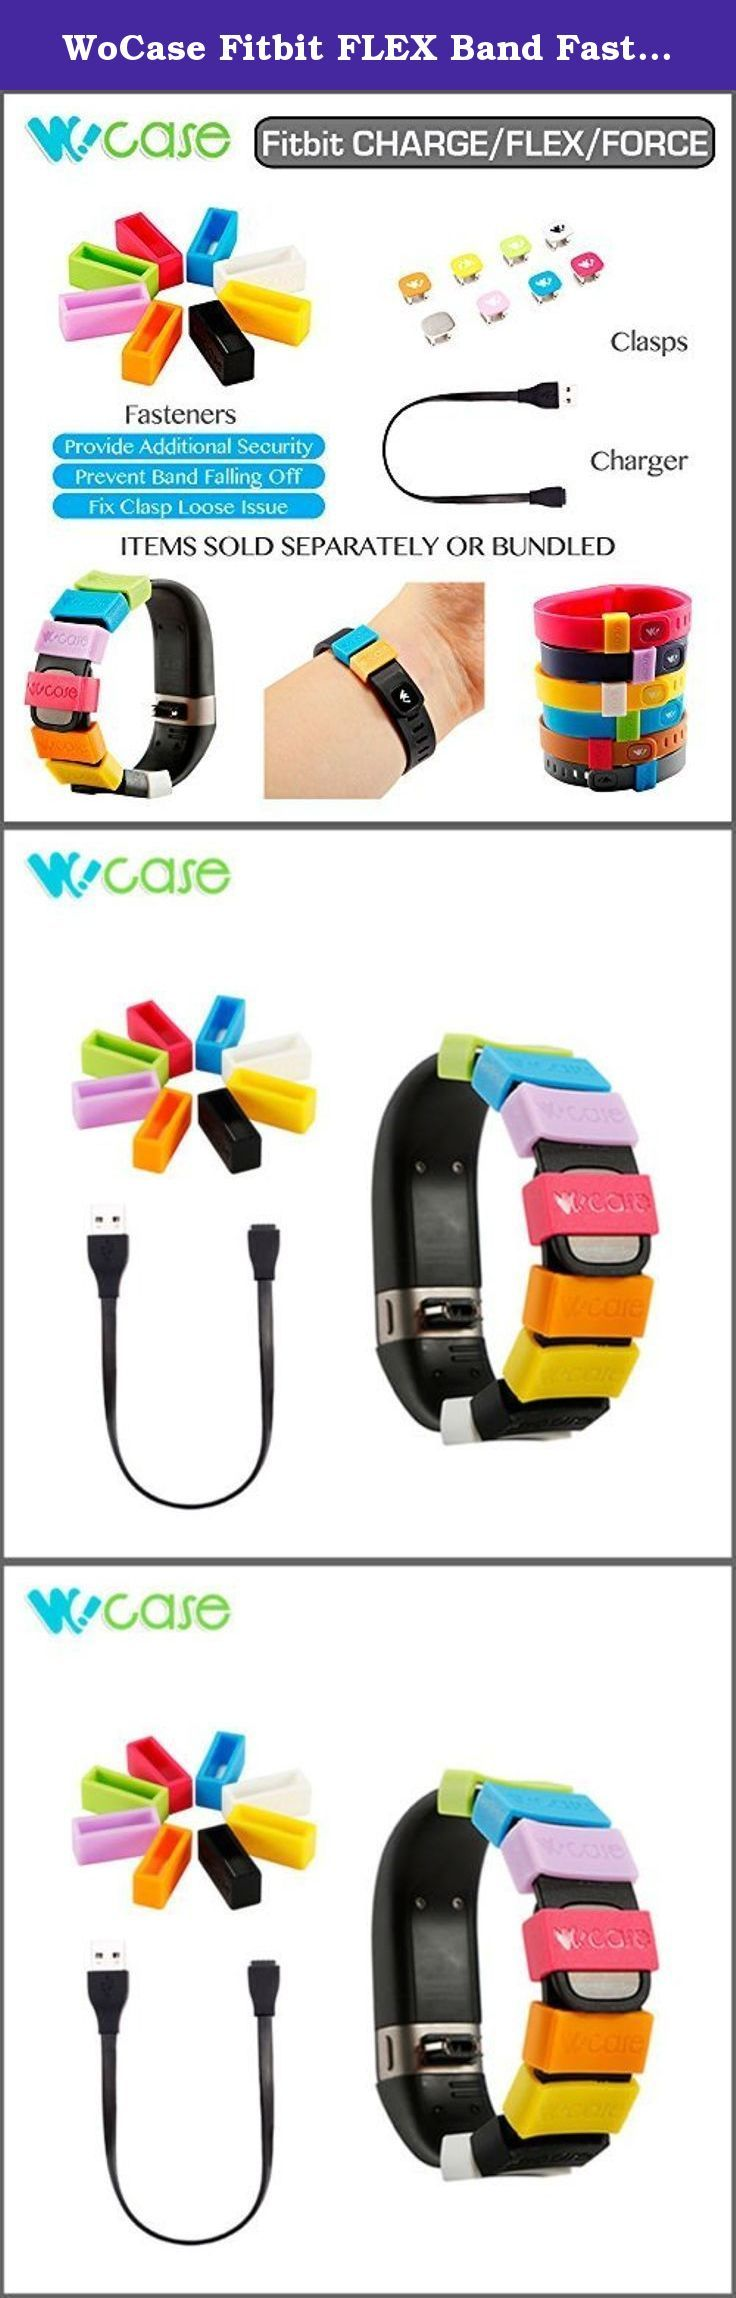 WoCase Fitbit FLEX Band Fastener Holder Set (Skin Friendly/Allergen FREE) and USB Charging Cable Bundle for Fitbit FLEX Activity and Sleep Tracker Band Bracelet (Fix Clasp Falling off, Retail Gift Ready Package). Includes 8 Pcs/Pack O-Ring Silicon Fastener (Skin Friendly/Allergen FREE) and one USB charging cable. Skin Friendly. Allergen FREE. ONLY compatible with Fitbit FLEX activity and sleep tracker. Prevents wristband falling off in active sports. Perfect fit to your FLEX. Personalizes...